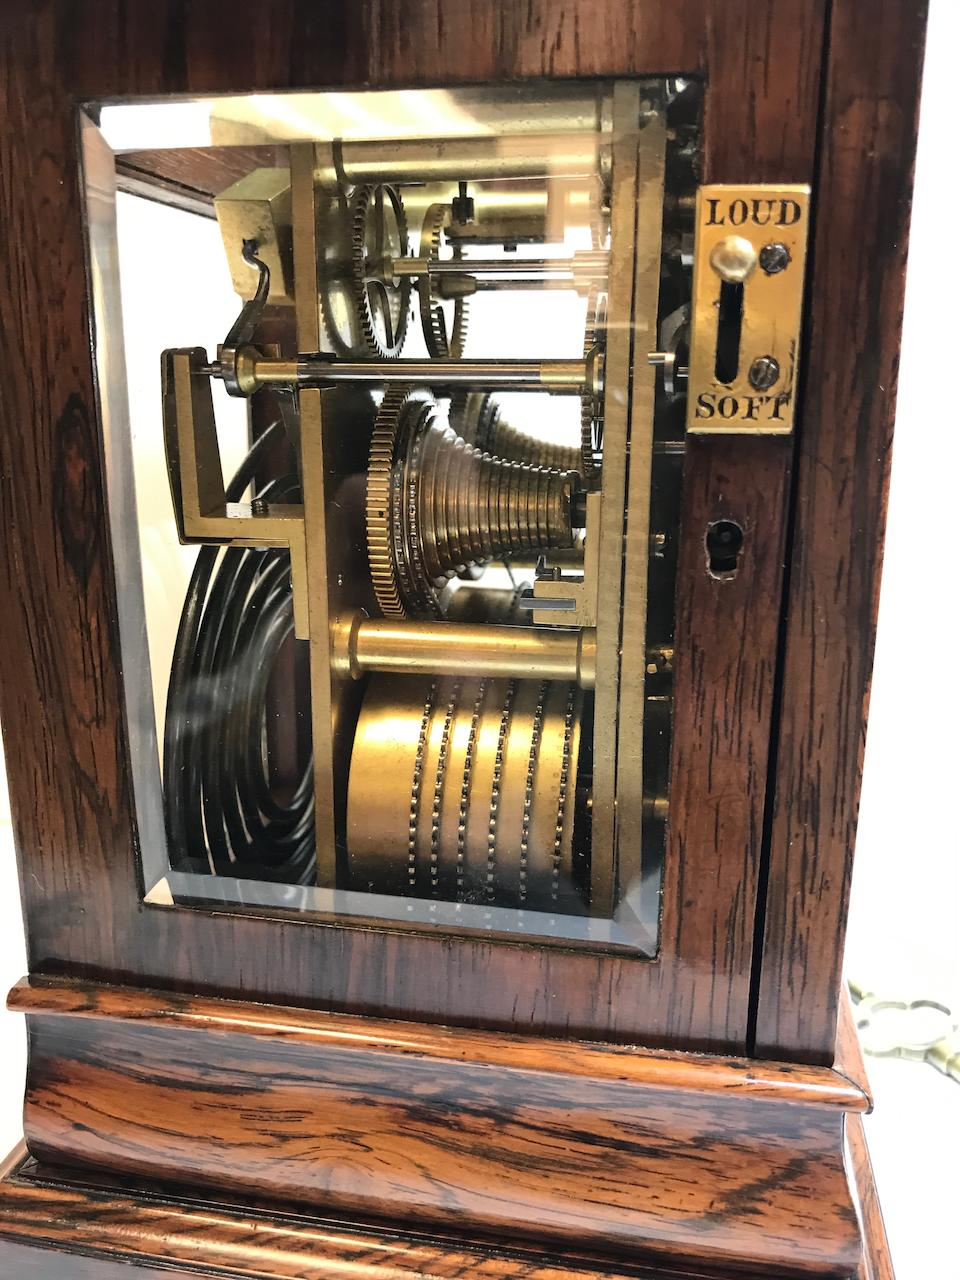 A good rosewood four glass traveling clock with soft / loud striking optionSigned, Viner, 235 Regent St., London Mid 19th century